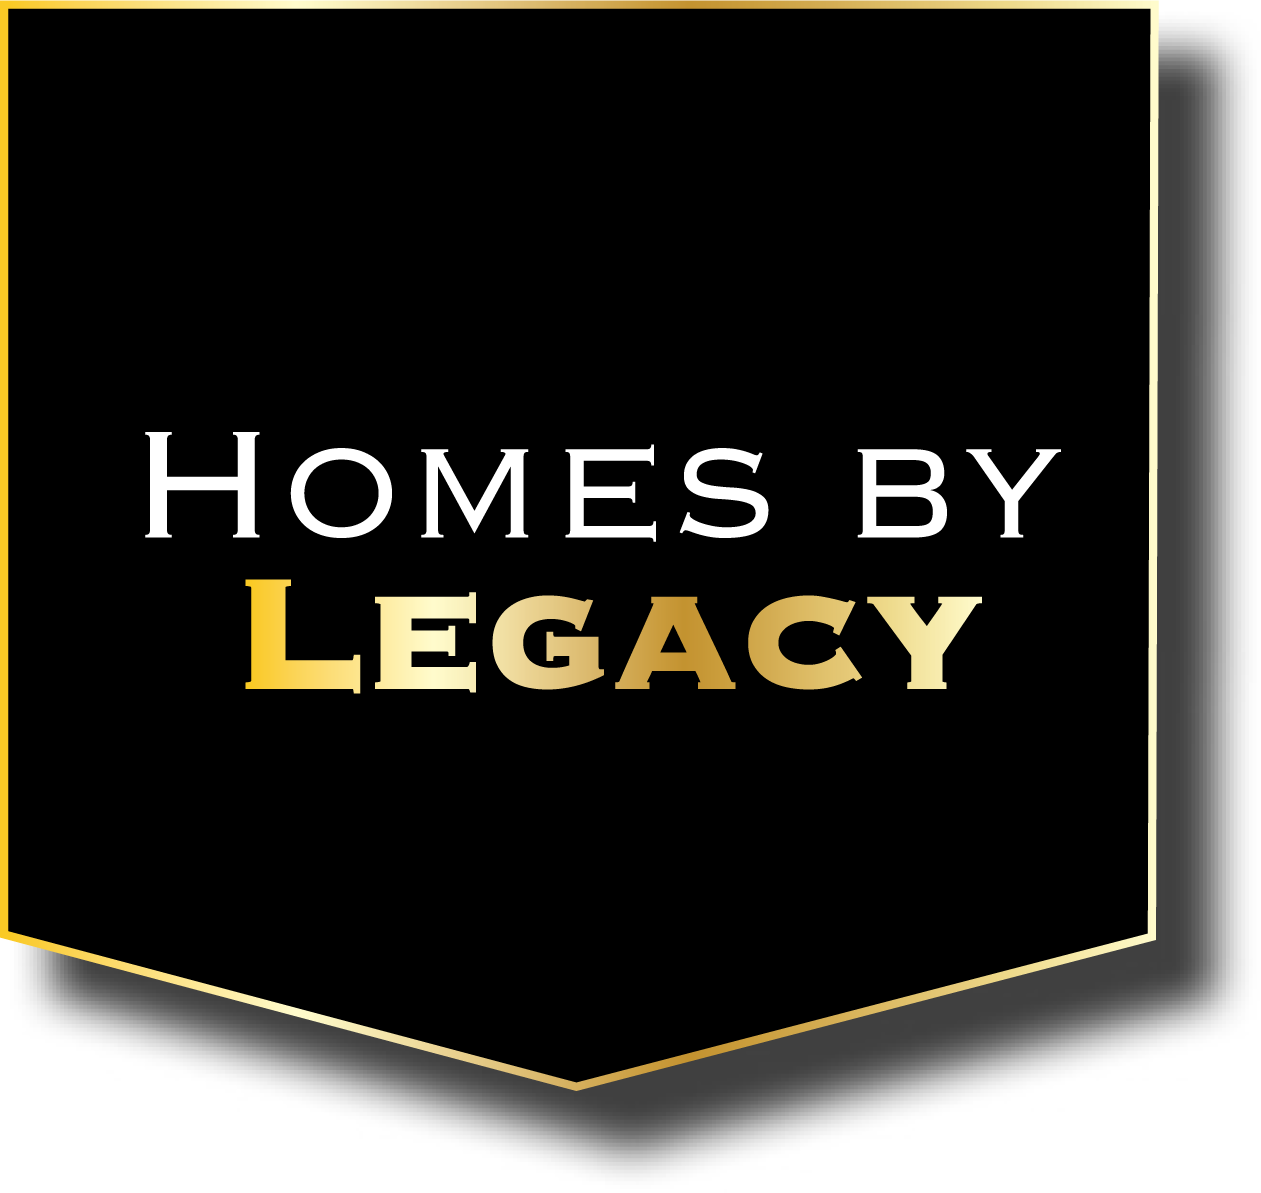 Homes by Legacy